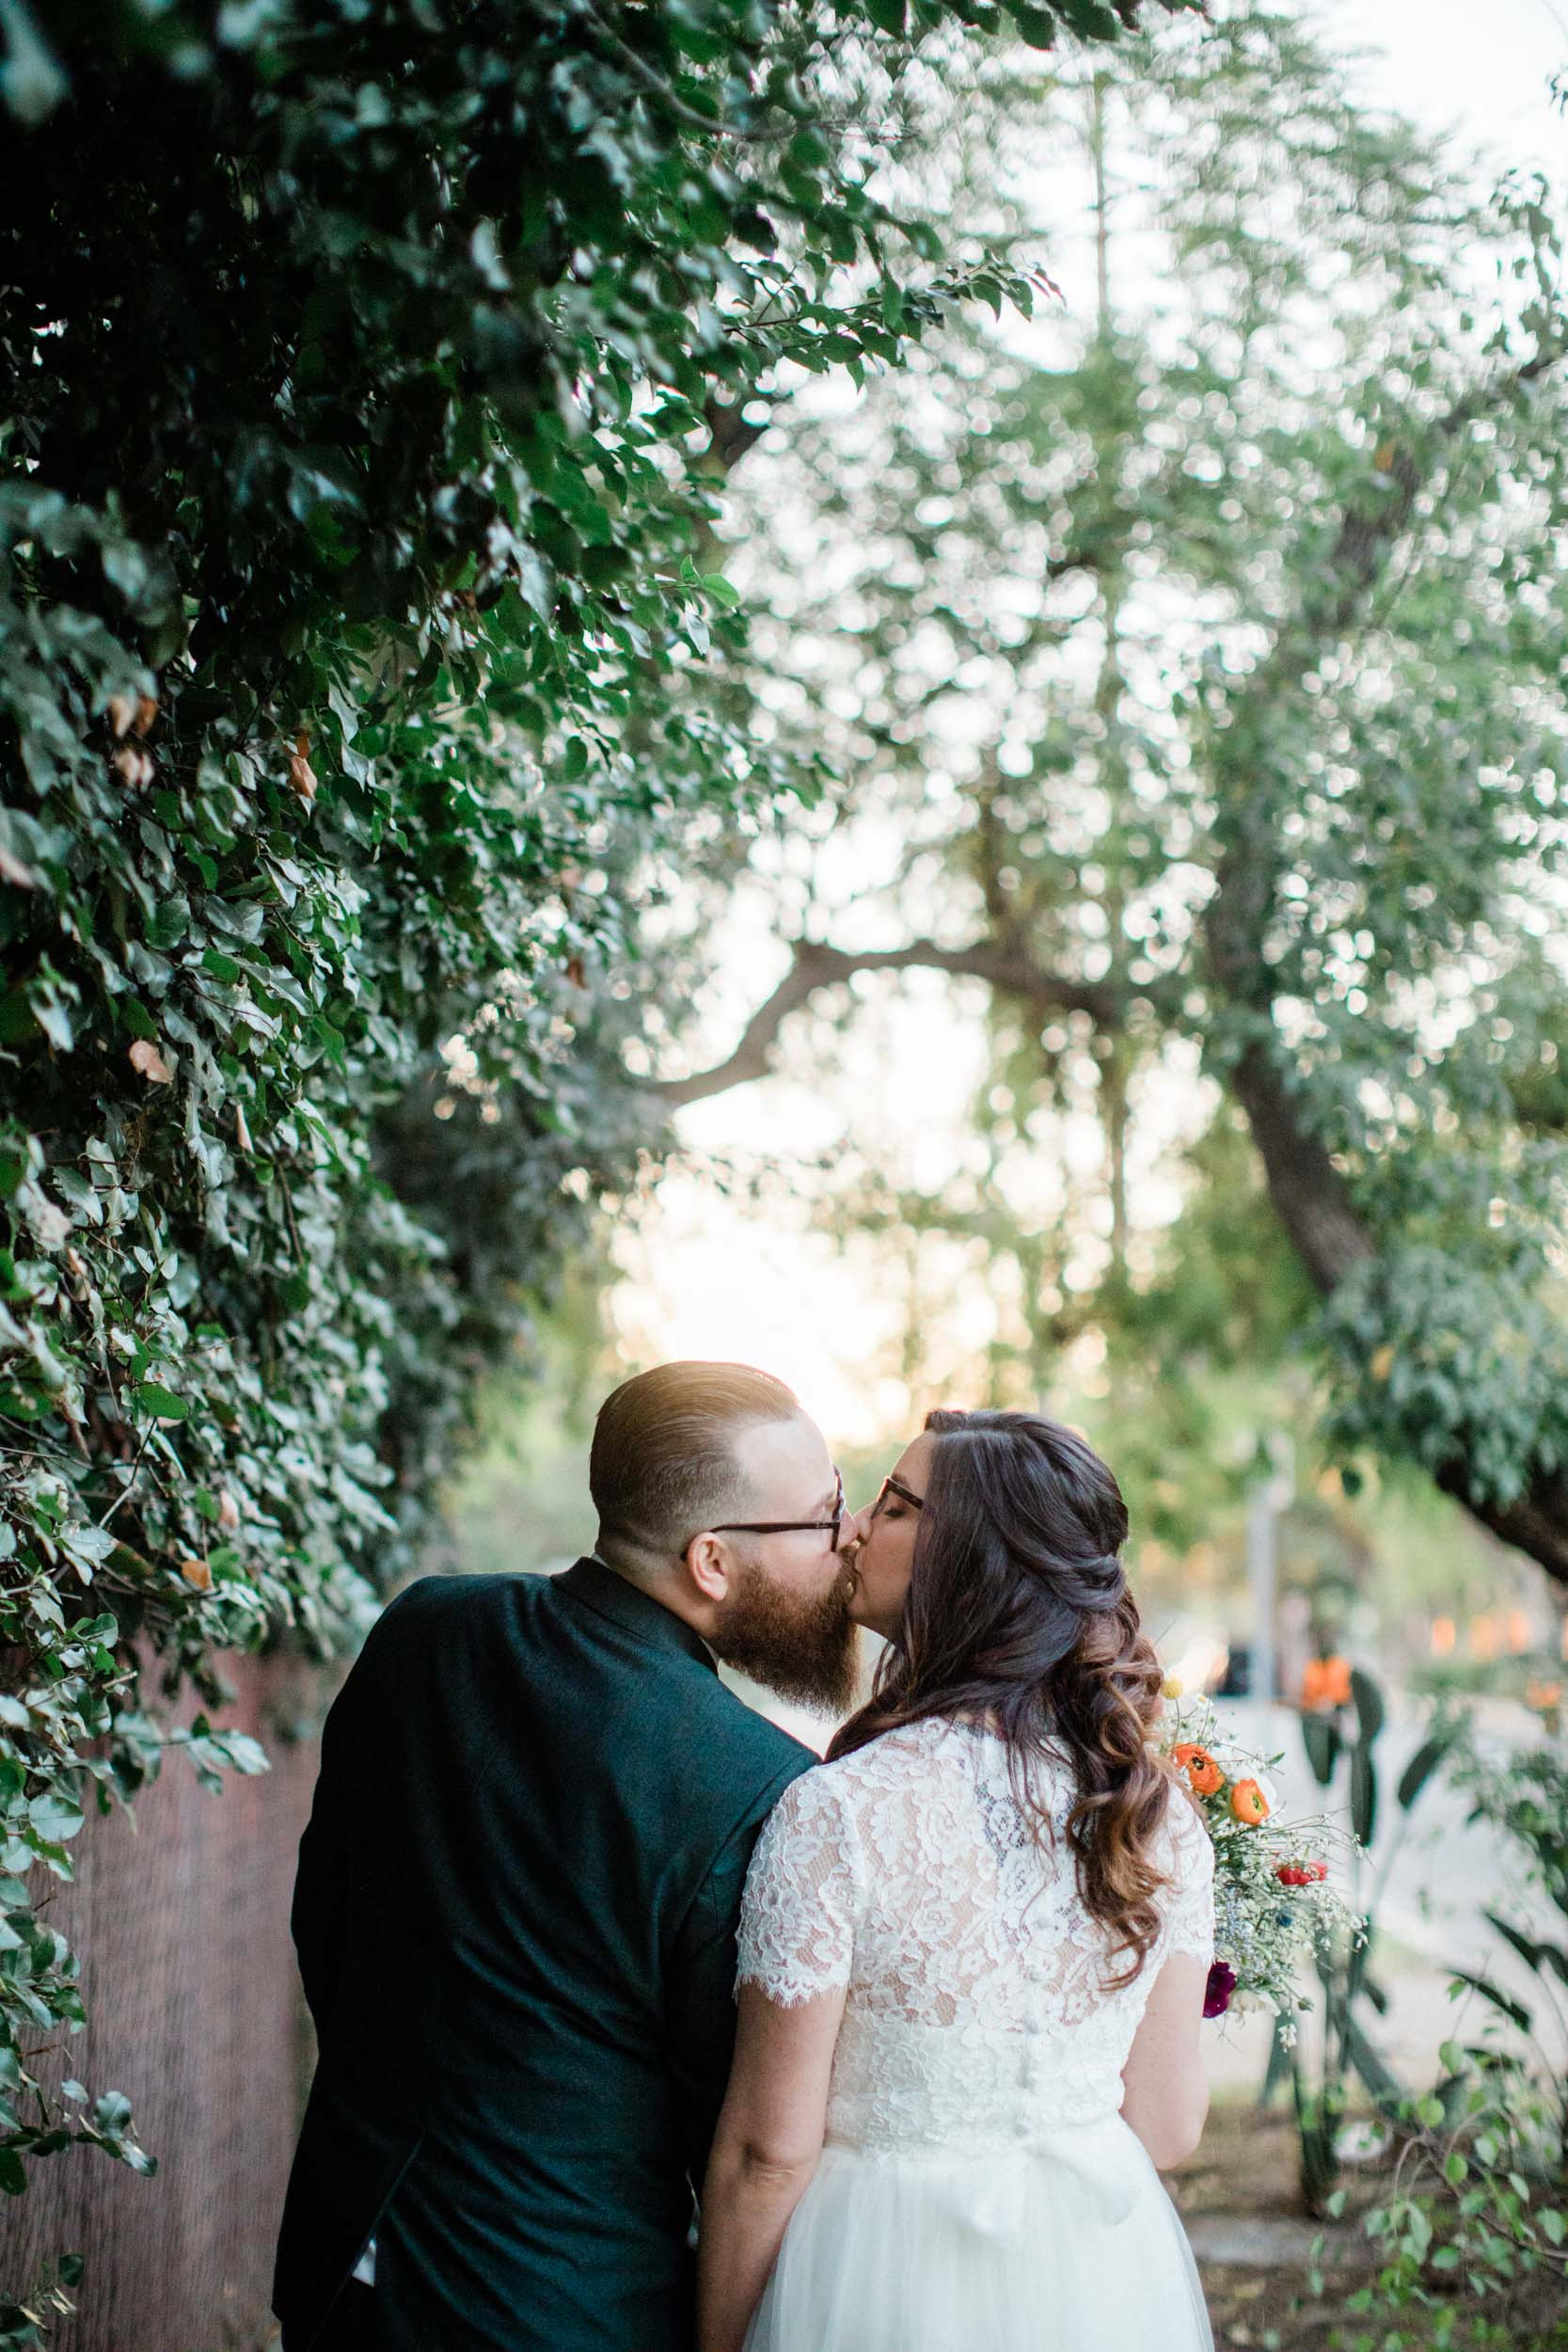 BKM-Photography-Highland-Park-Los-Angeles-Backyard-DIY-Wedding-0109.jpg